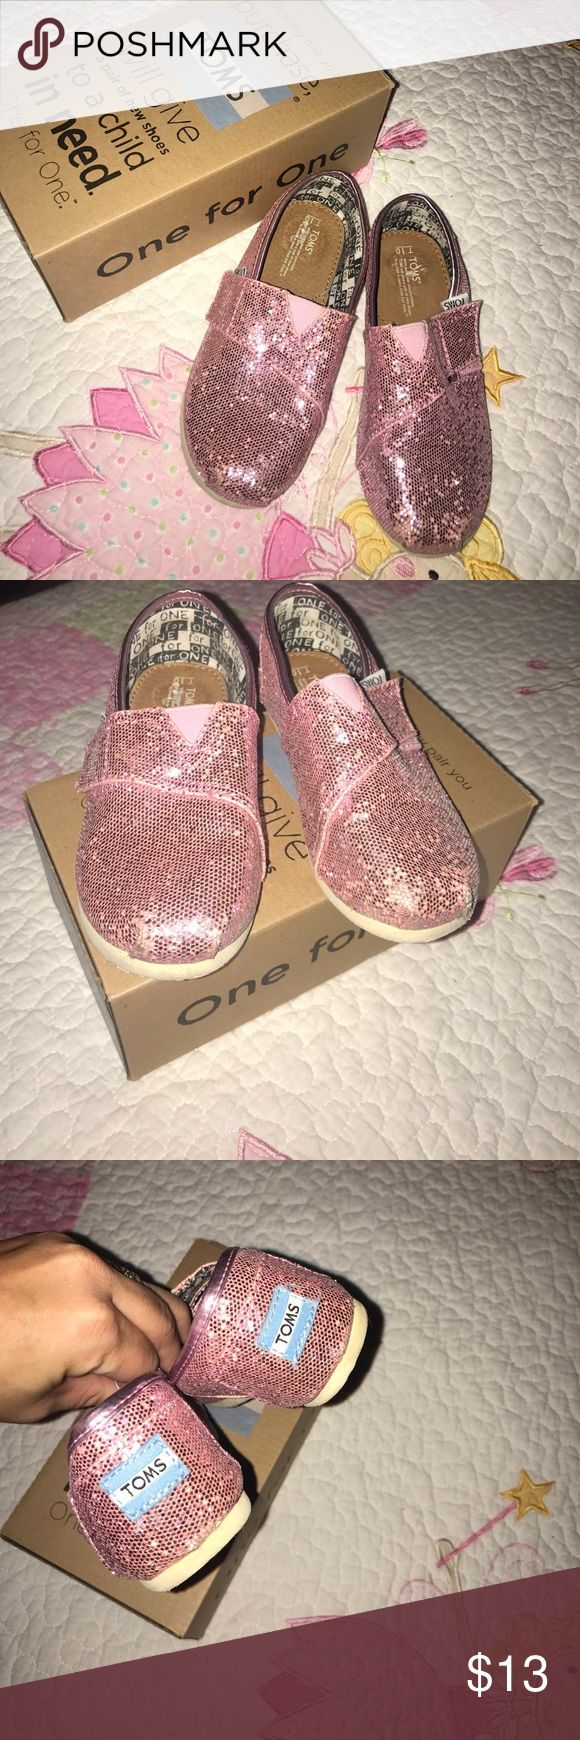 Girls Pink Glitter Toms Good, lightly worn Classics Pink Glitter Toms.  Includes box and